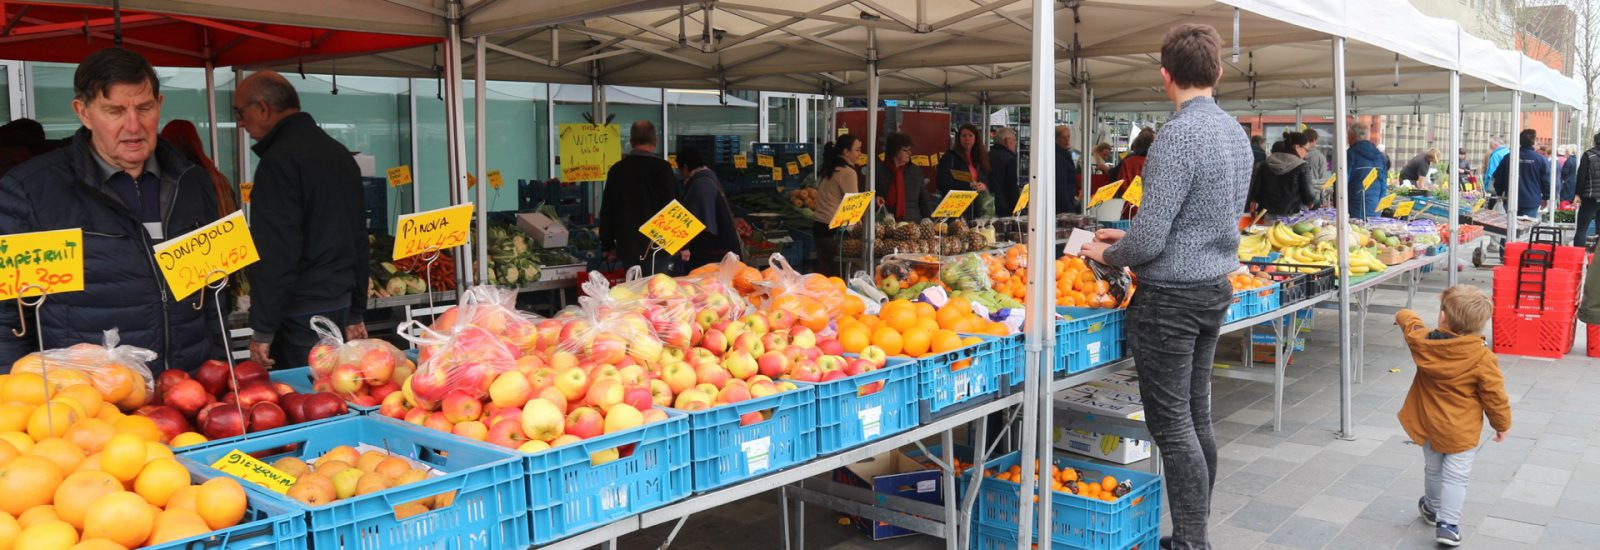 HOLLANDSE TROSTOMATEN 1 KILO €1,—